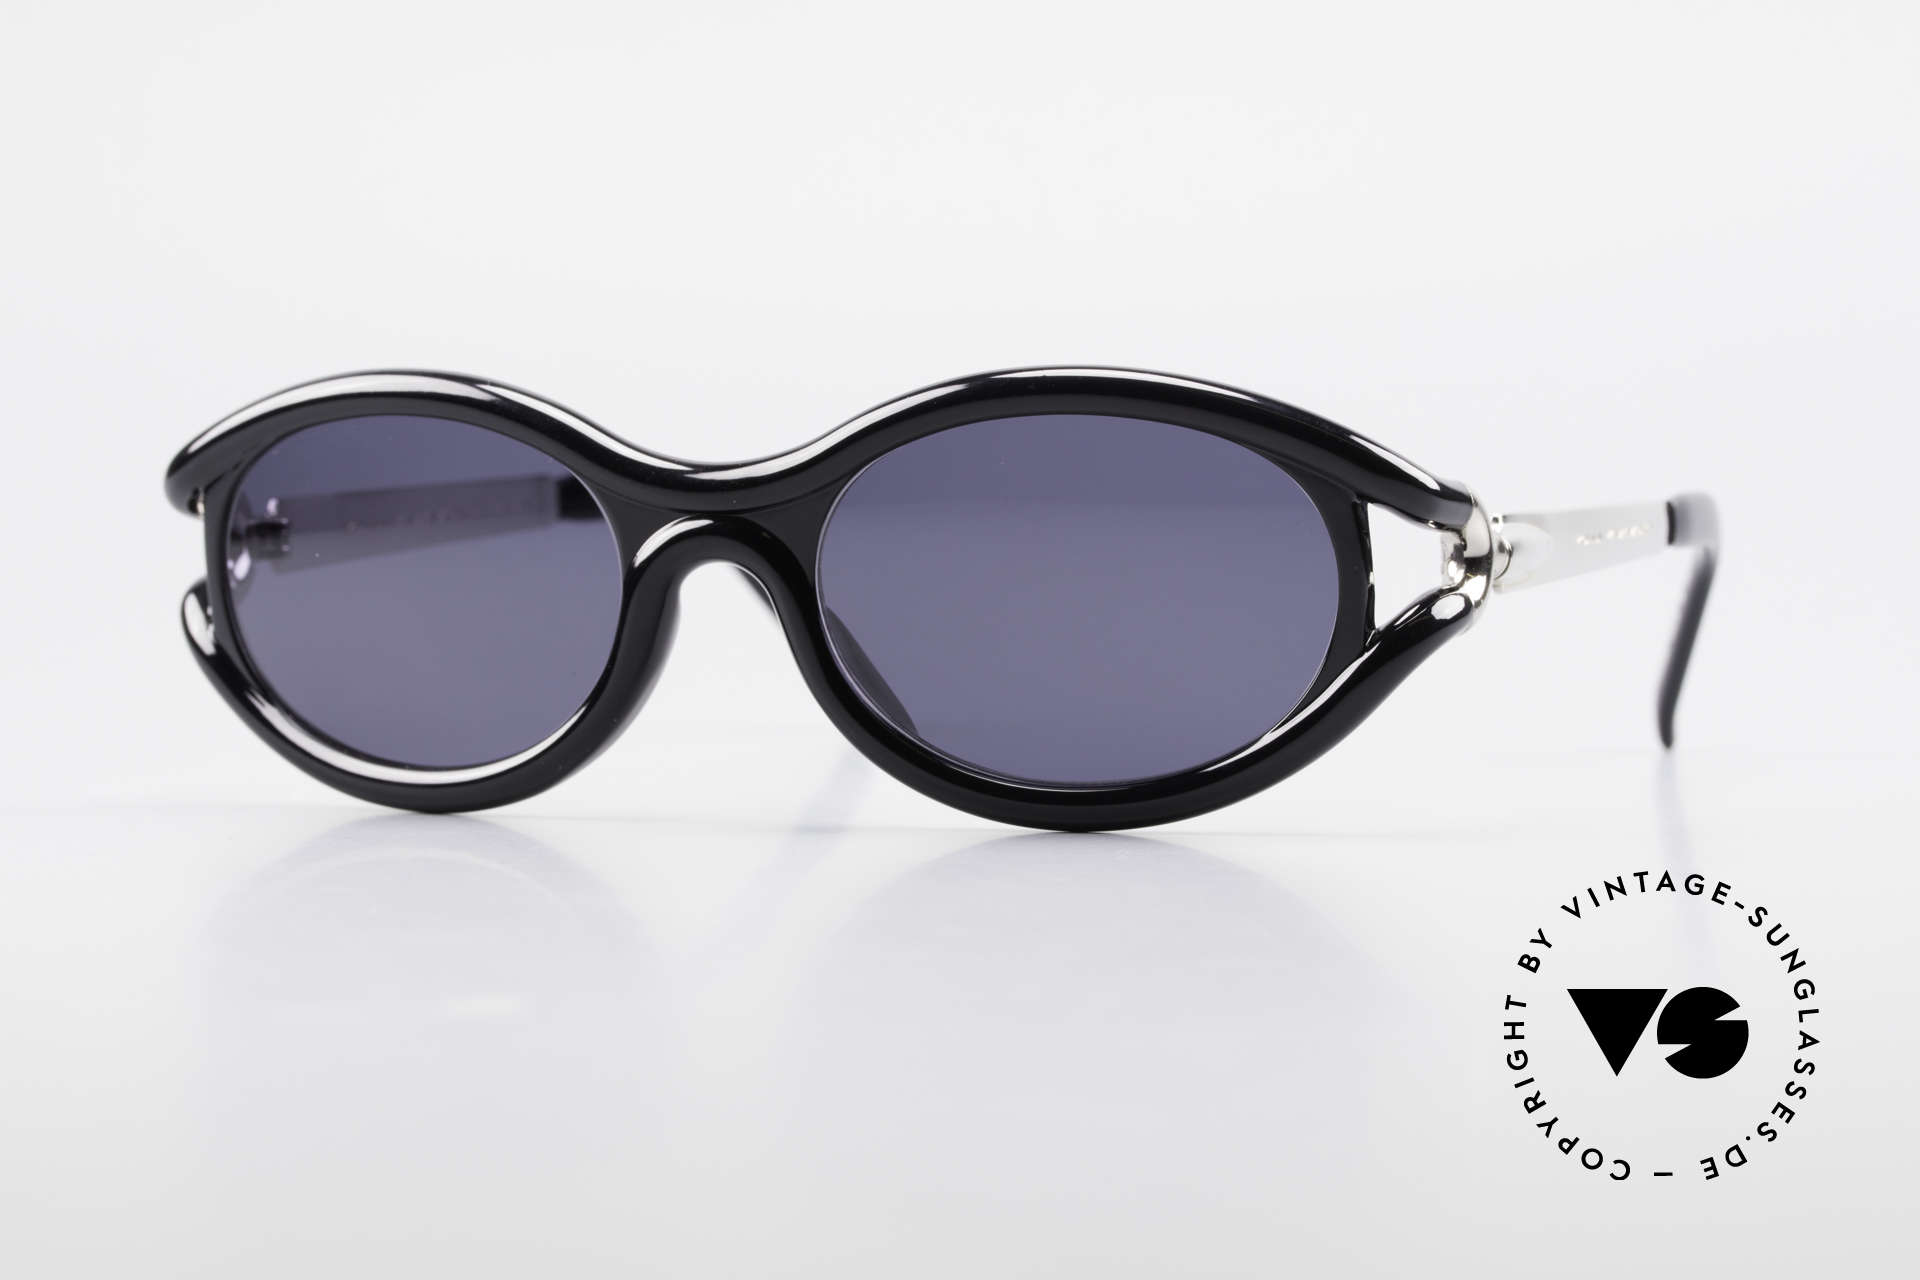 Yohji Yamamoto 52-5201 Designer Shades Made in Japan, unique vintage sunglasses by Yohji Yamamoto of the 90s, Made for Men and Women